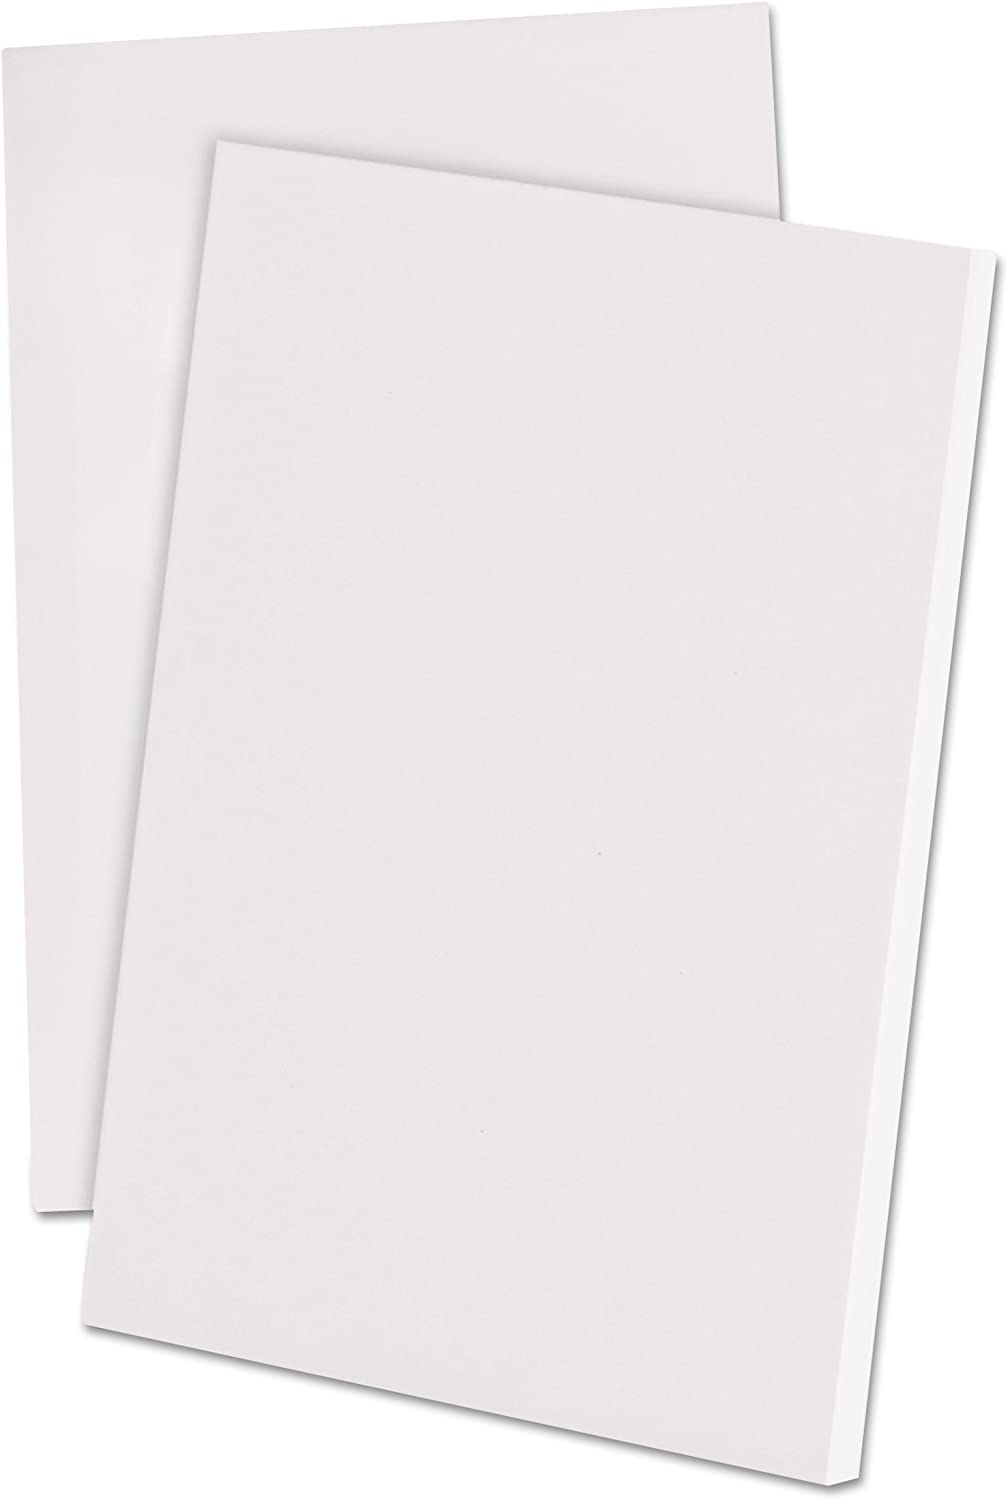 Ampad 21731 Scratch Pad Notebook, Unruled, 4 x 6, White, 100 Sheets (Pack of 12)